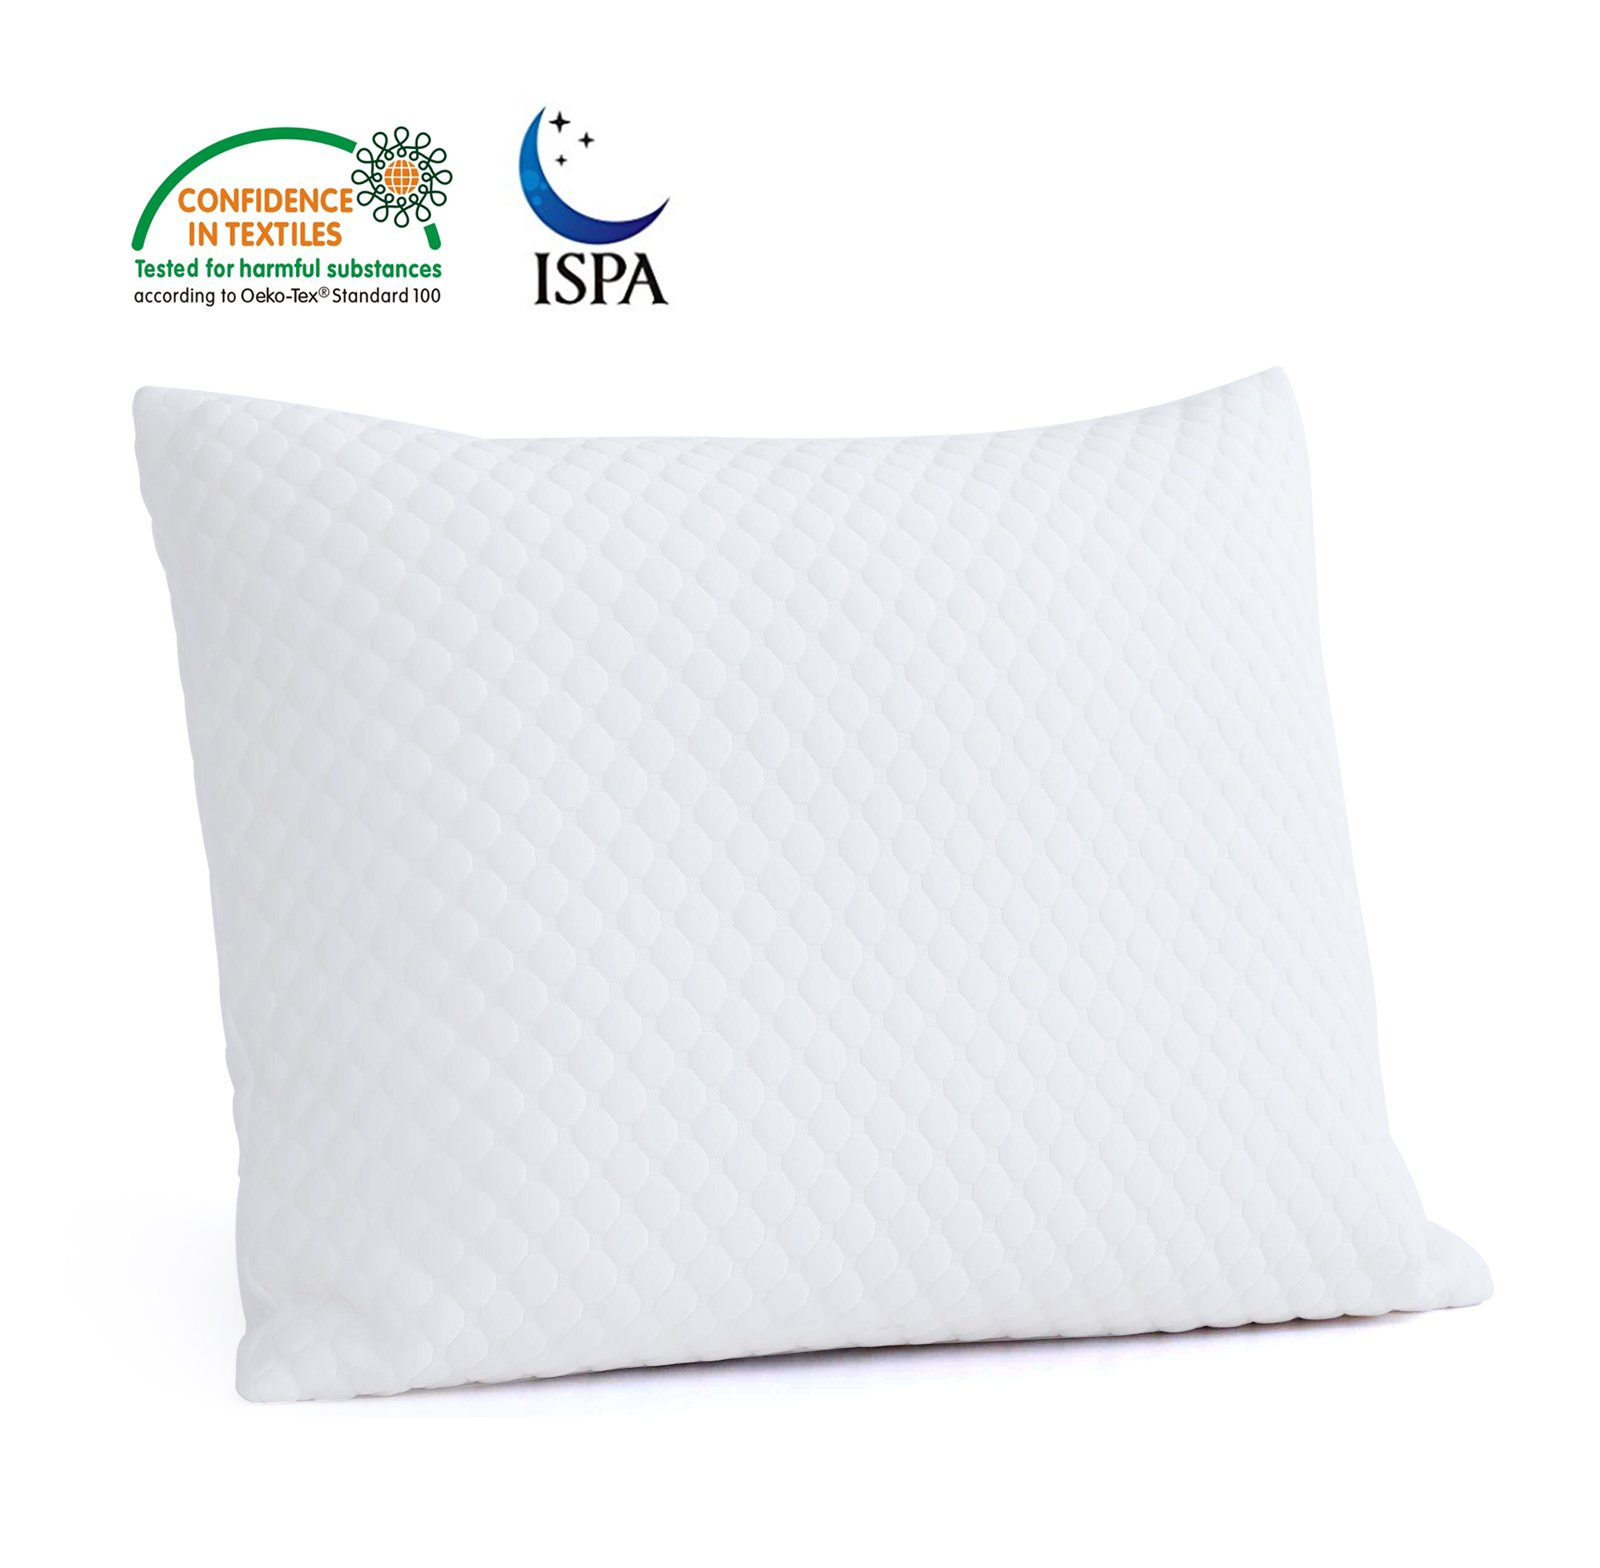 Chevanie Shredded Memory Foam Pillow Adjustable Hypoallergenic Bed Pillow-20 x 30-Queen Size